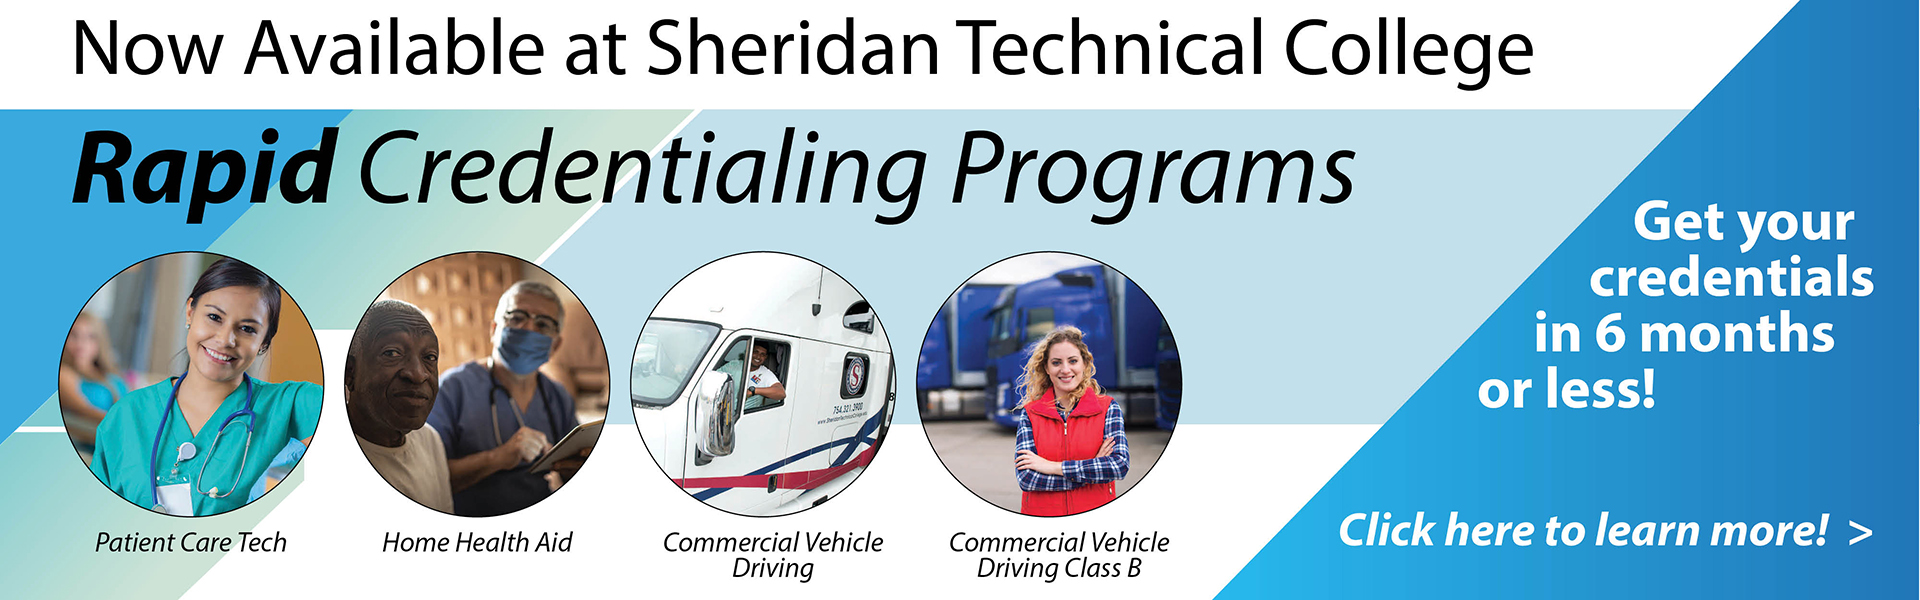 rapid credentialing programs available at sheridan technical college